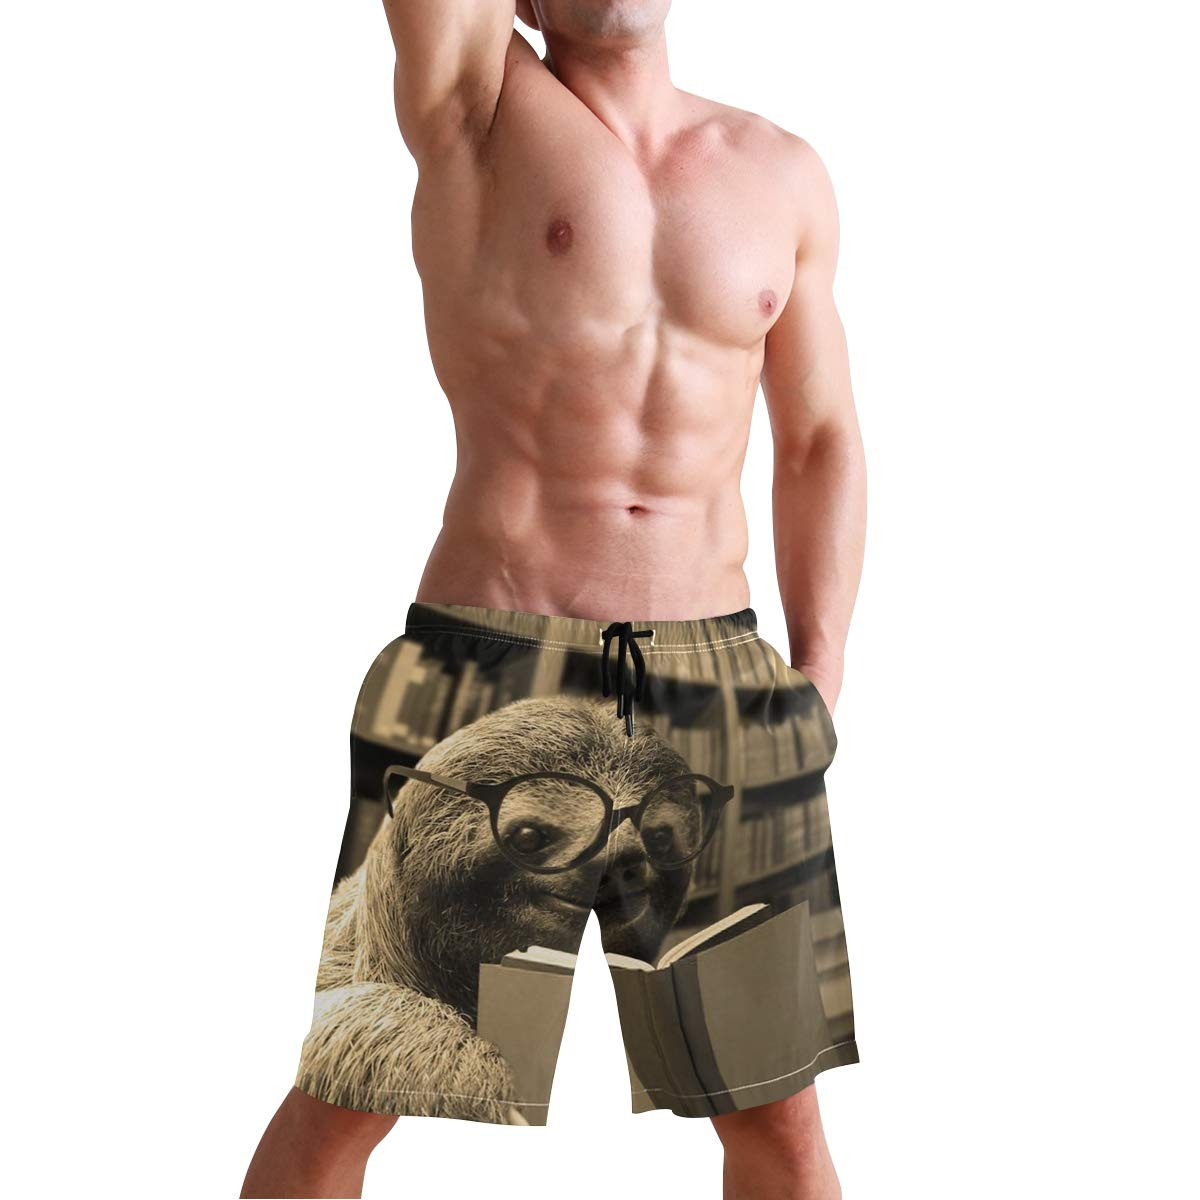 Casual Mens Swim Trunks Breathable Quick Dry Printed Beach Shorts Sloth Reading Books Summer Boardshorts with Mesh Lining